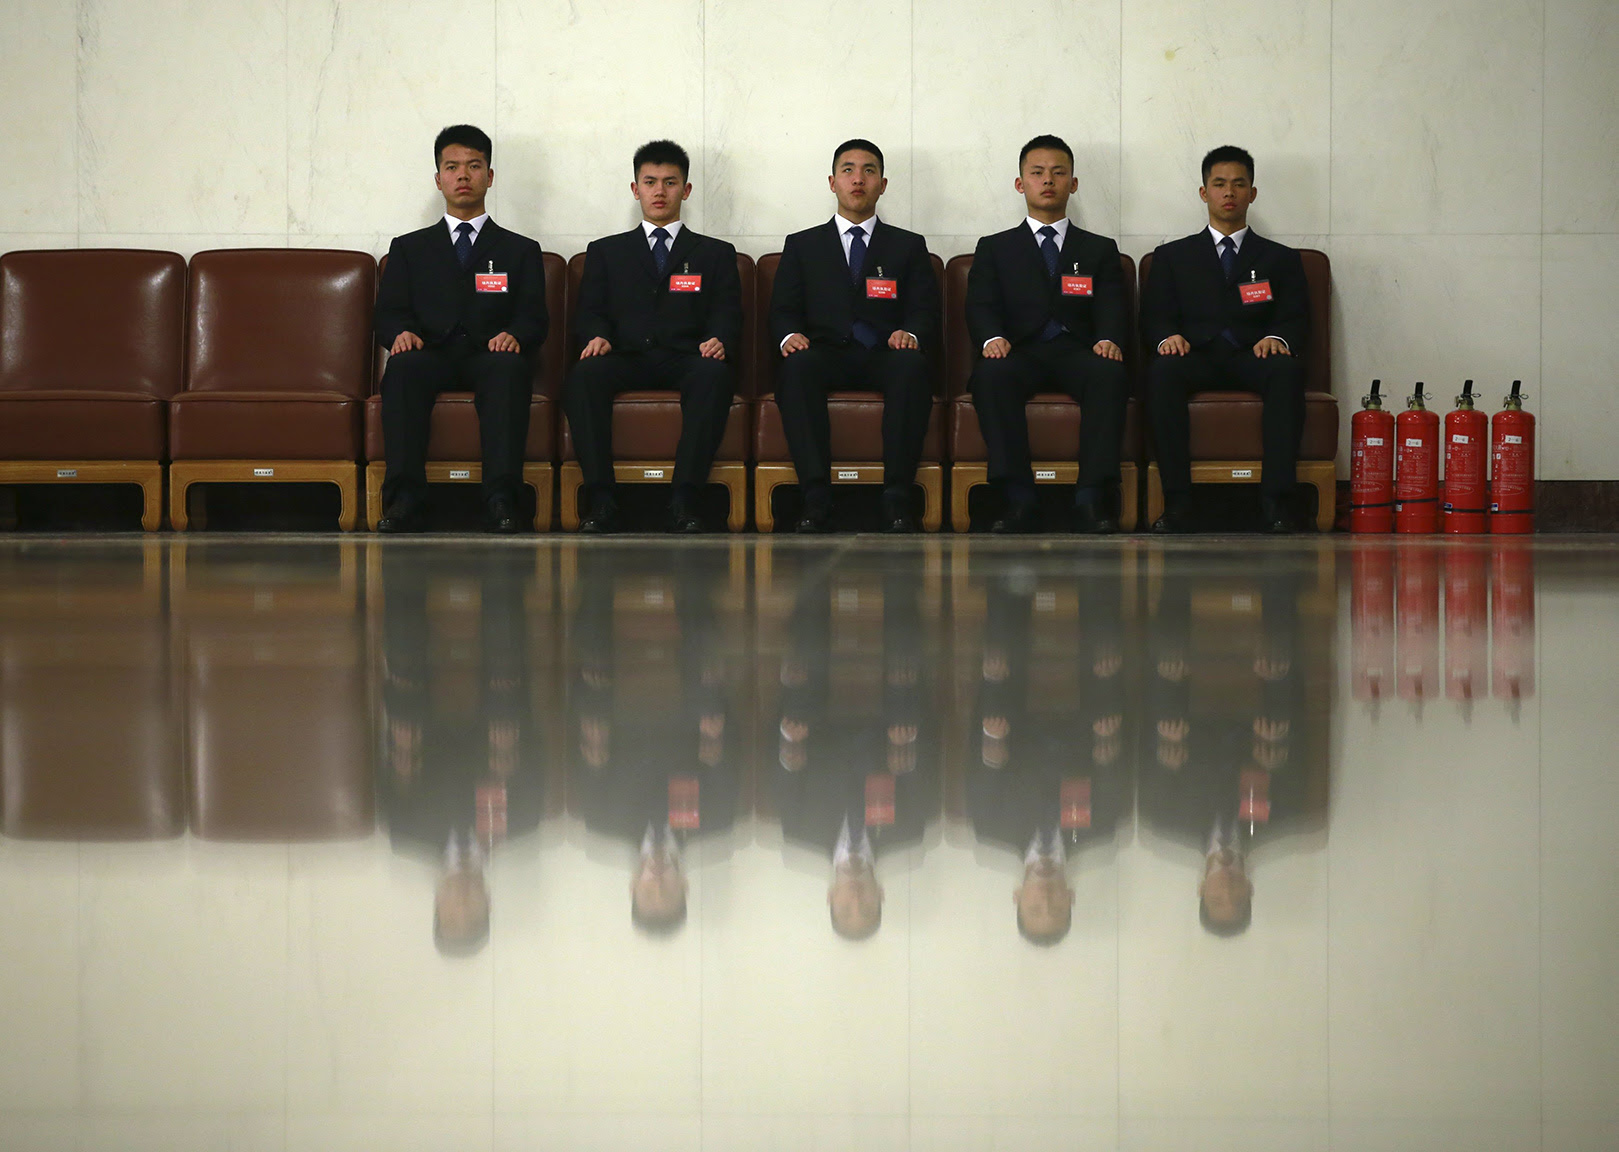 Security officers sit inside the Great Hall of the People before the opening session of the Chinese People's Political Consultative Conference (CPPCC), in Beijing, China